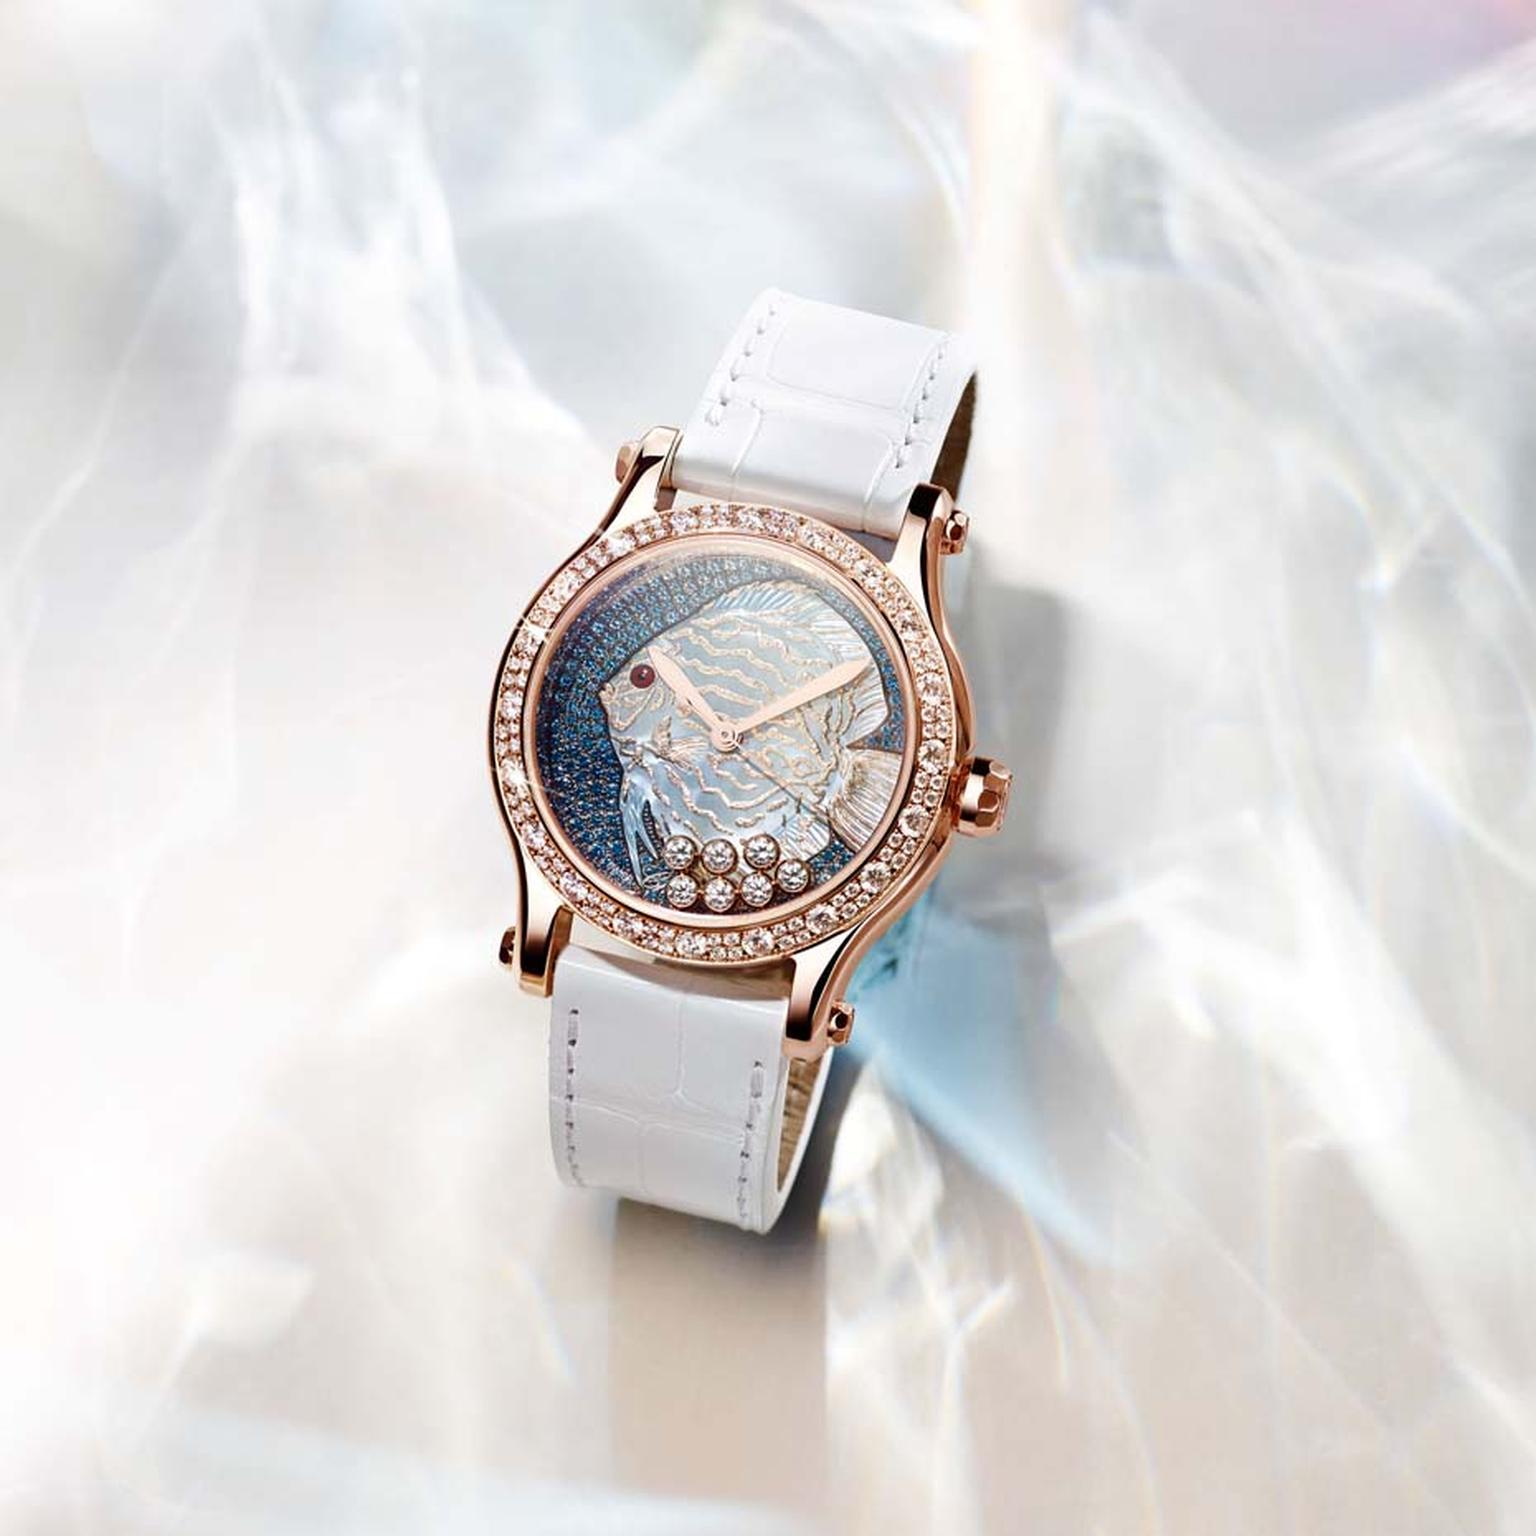 Fish watches_Chopard_Happy Fish watch by day.jpg